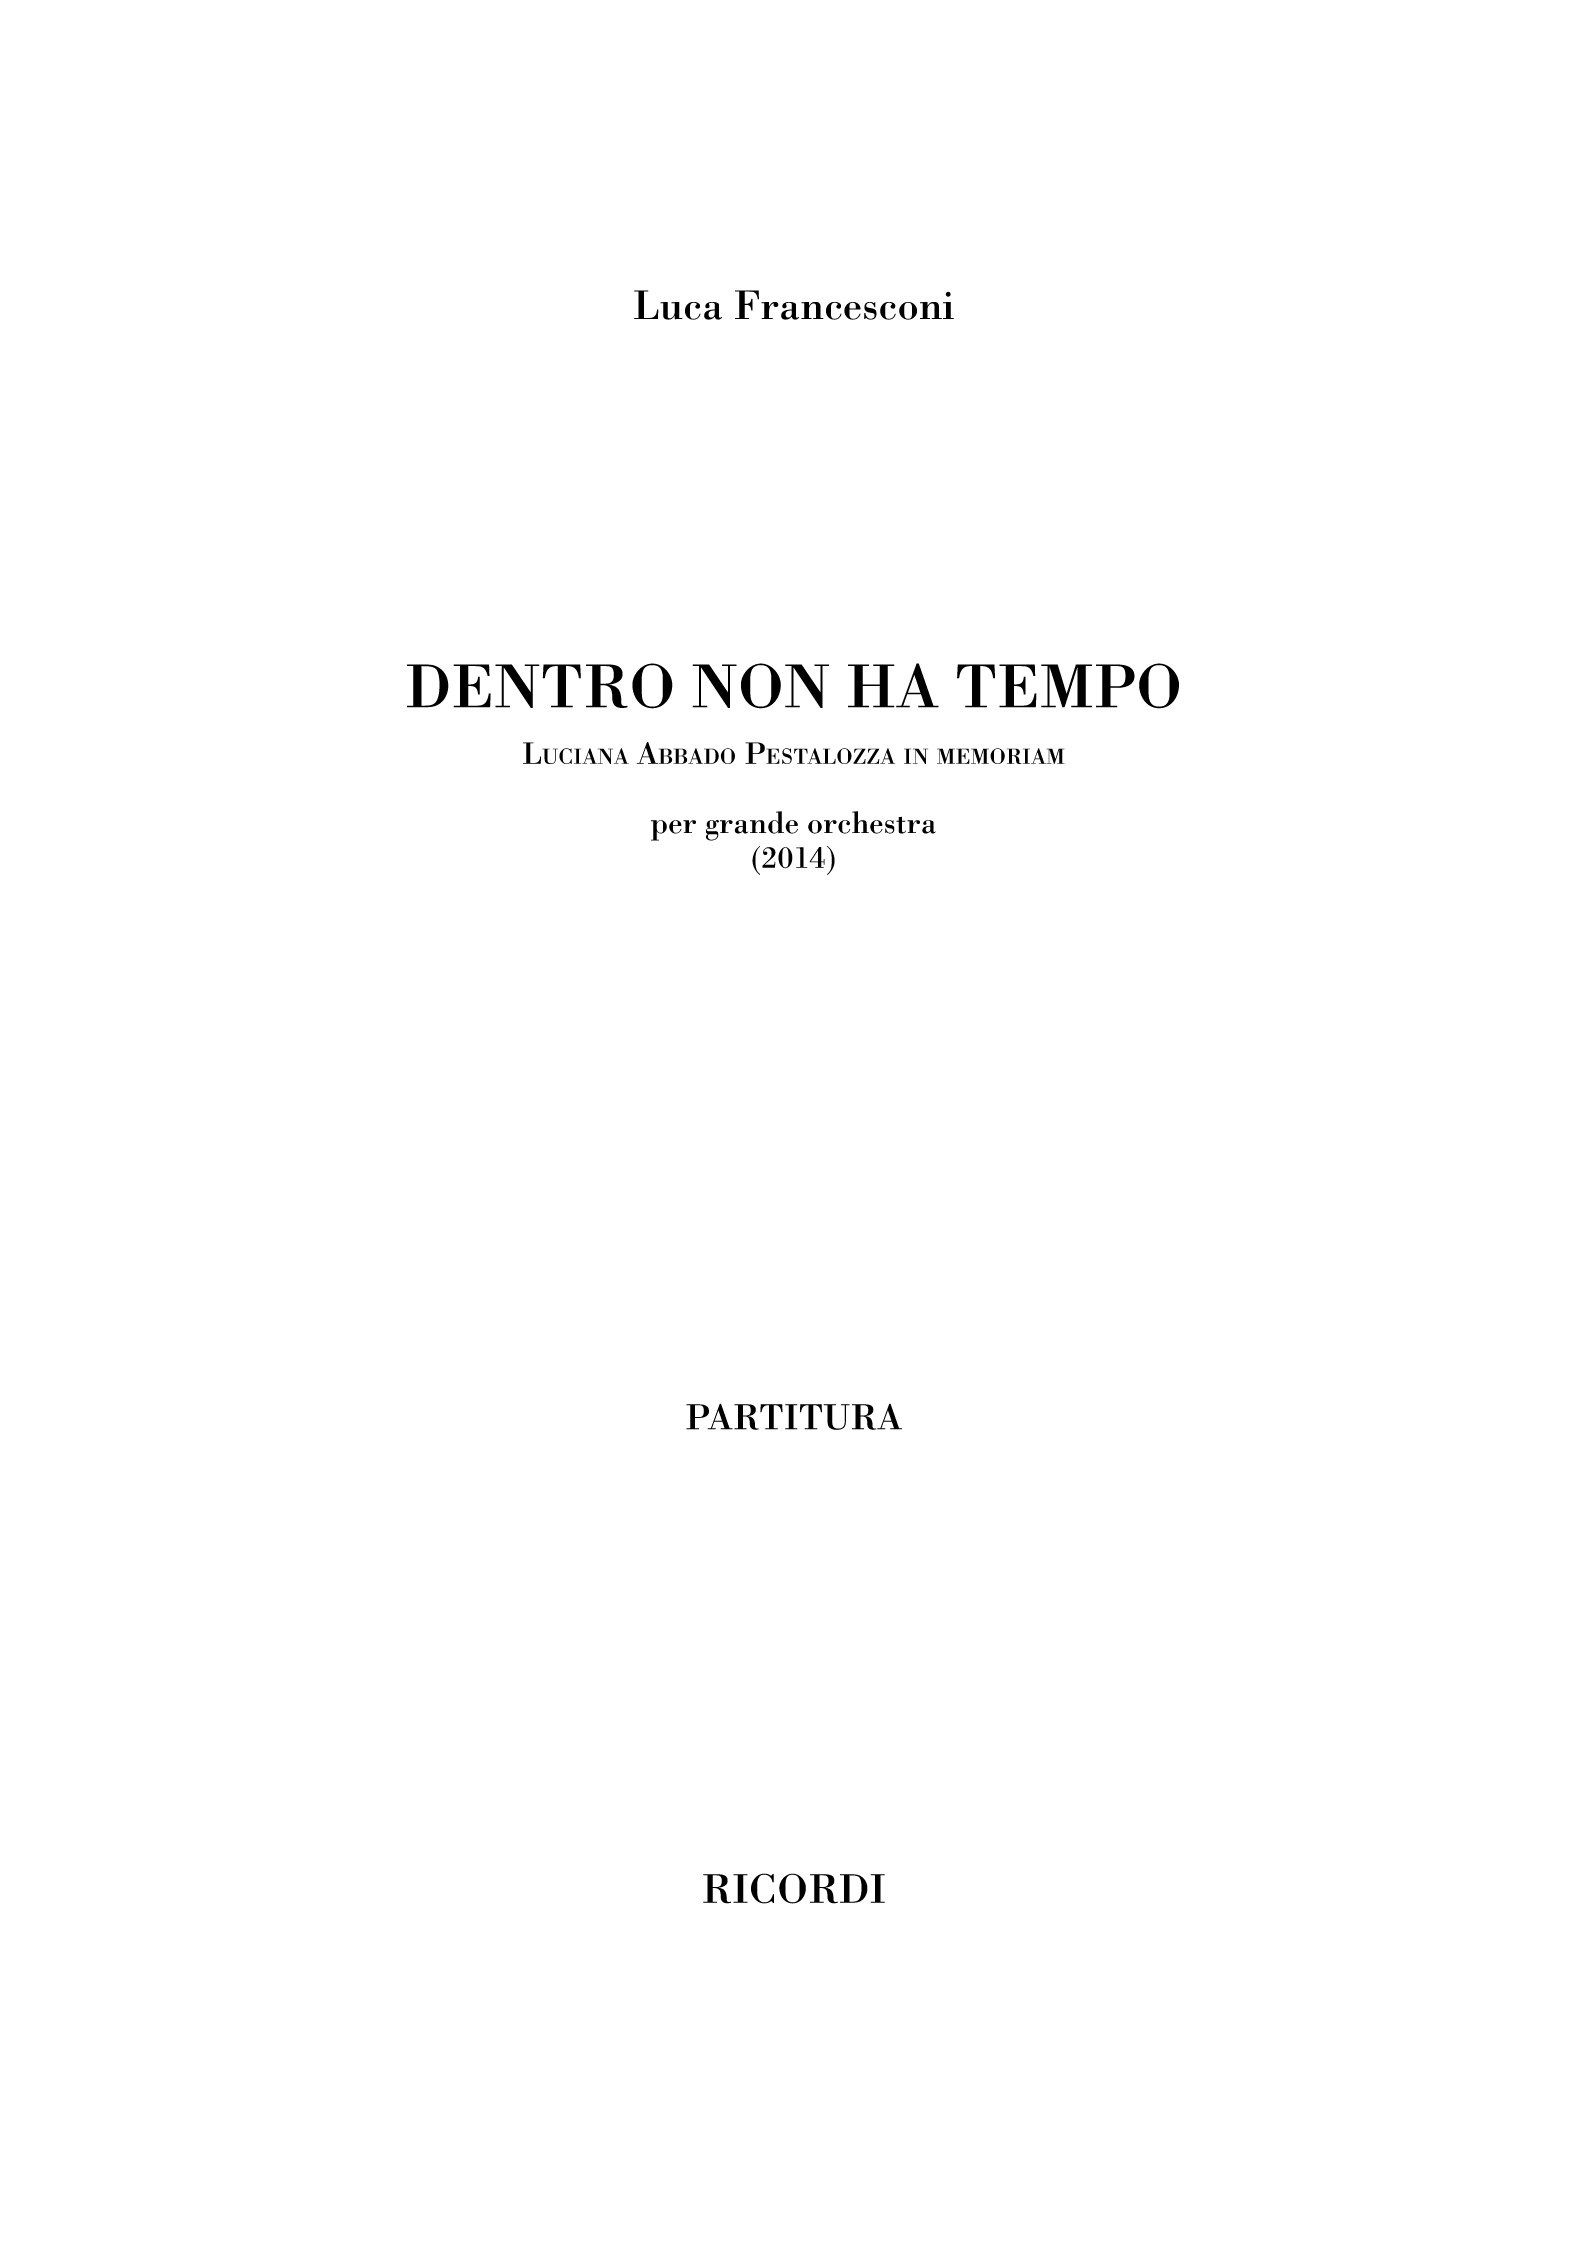 Dentro non ha tempo (flipbook)